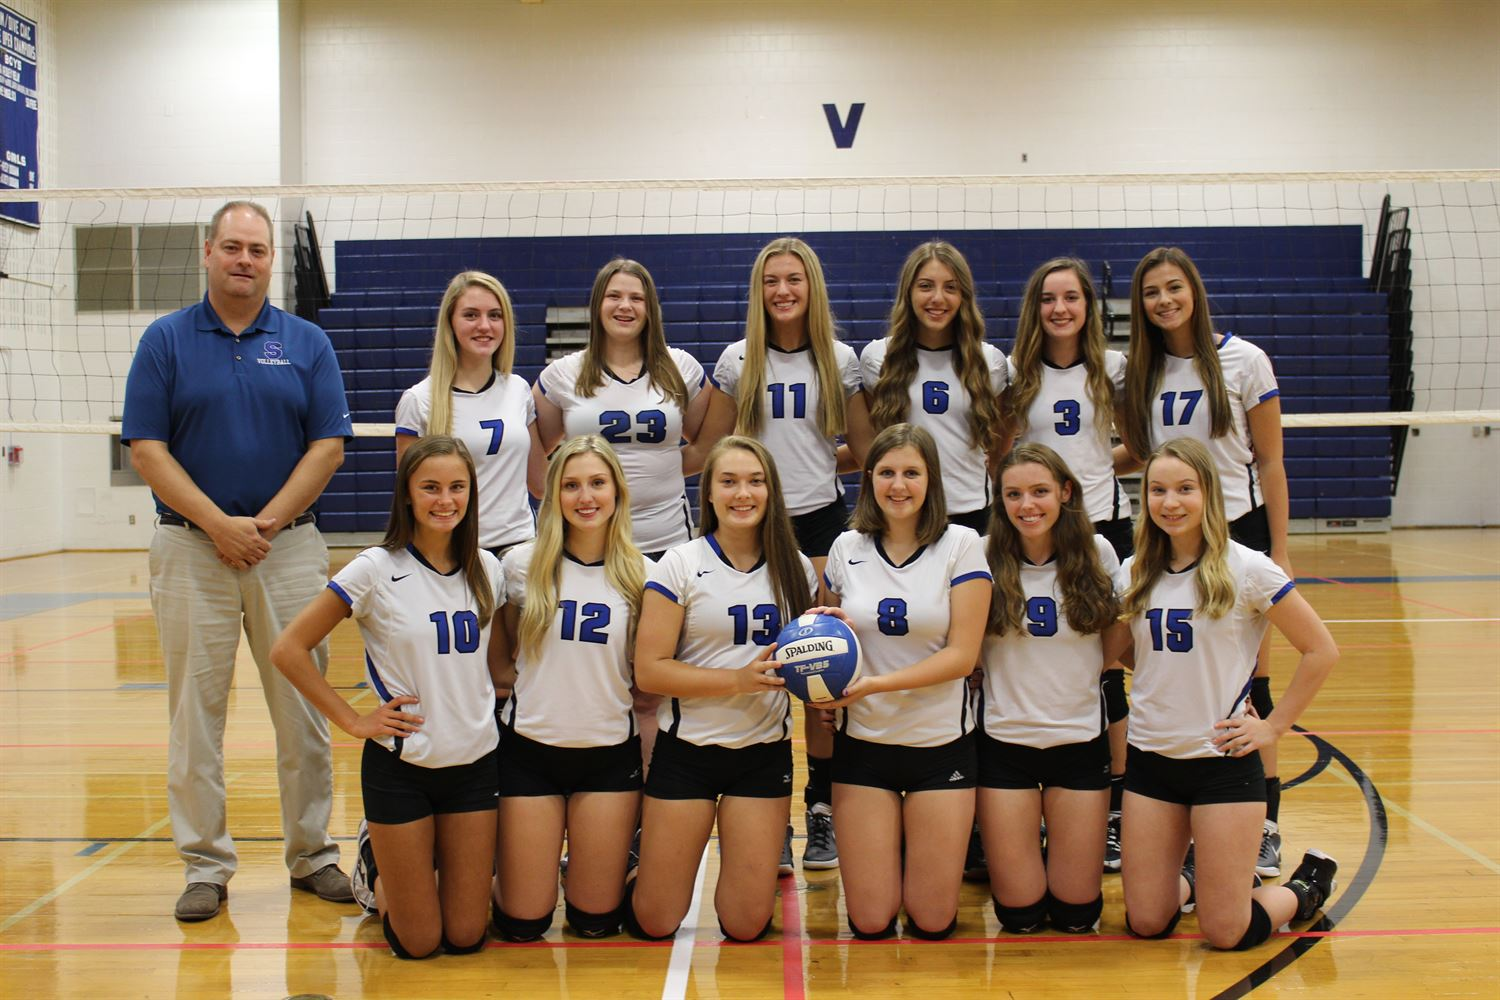 Southington High School - Girls Varsity Volleyball